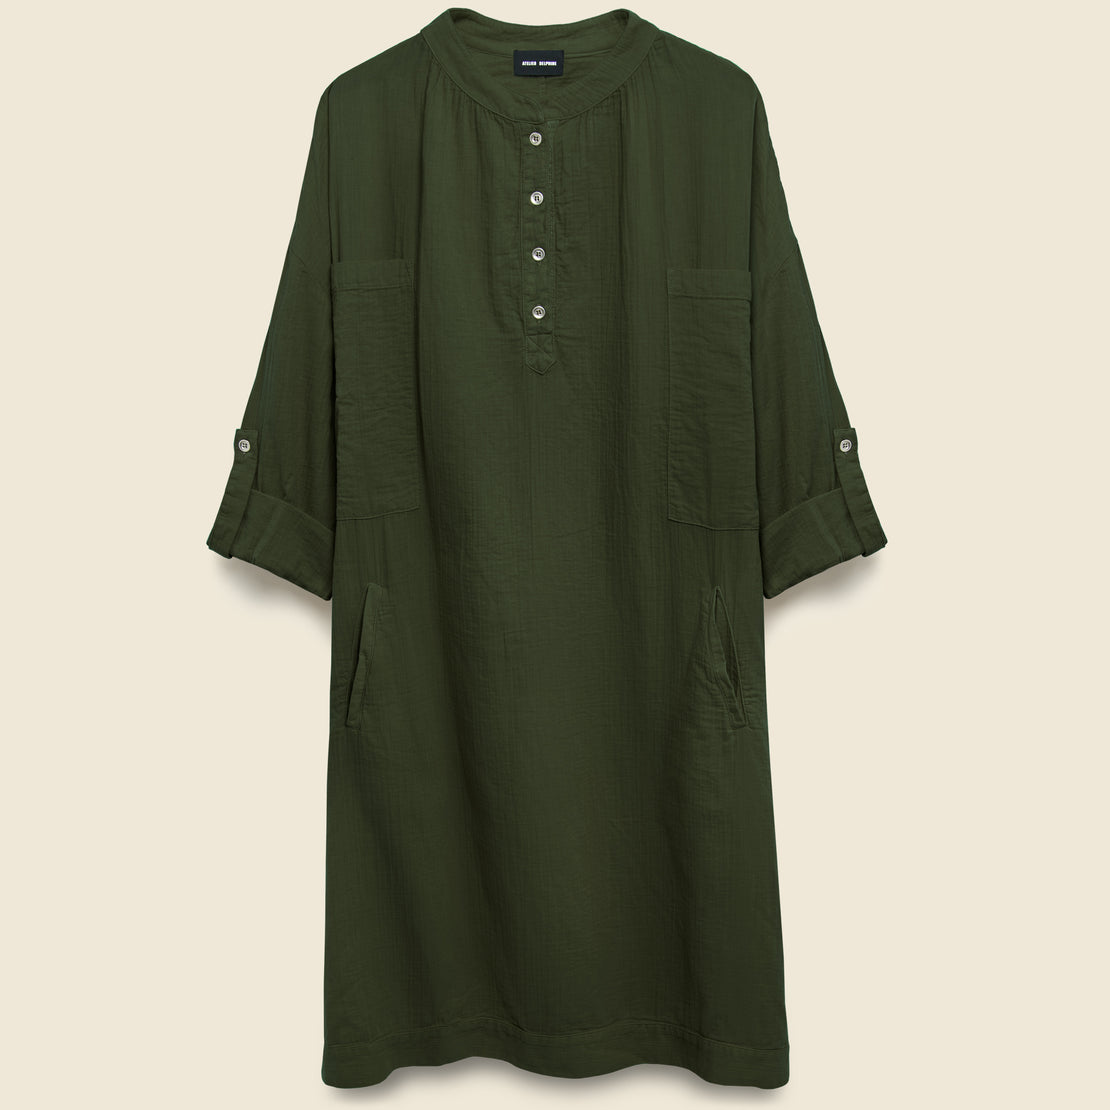 Atelier Delphine Beni Dress - Hunter Green